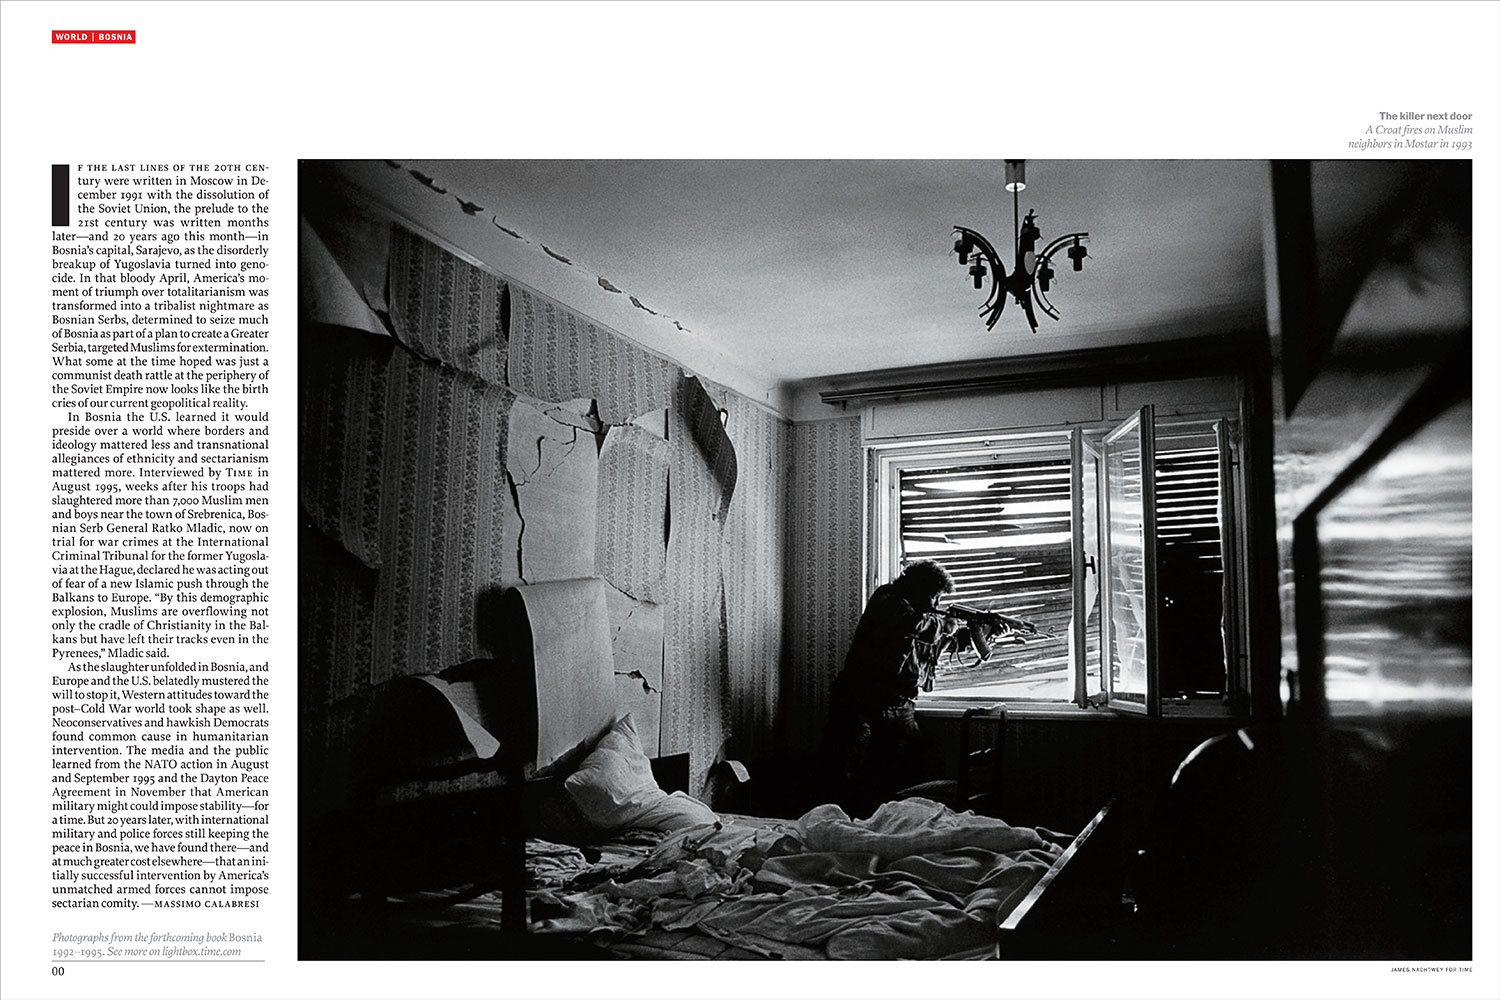 From  The Lessons of Bosnia.  April 16, 2012 International issue.